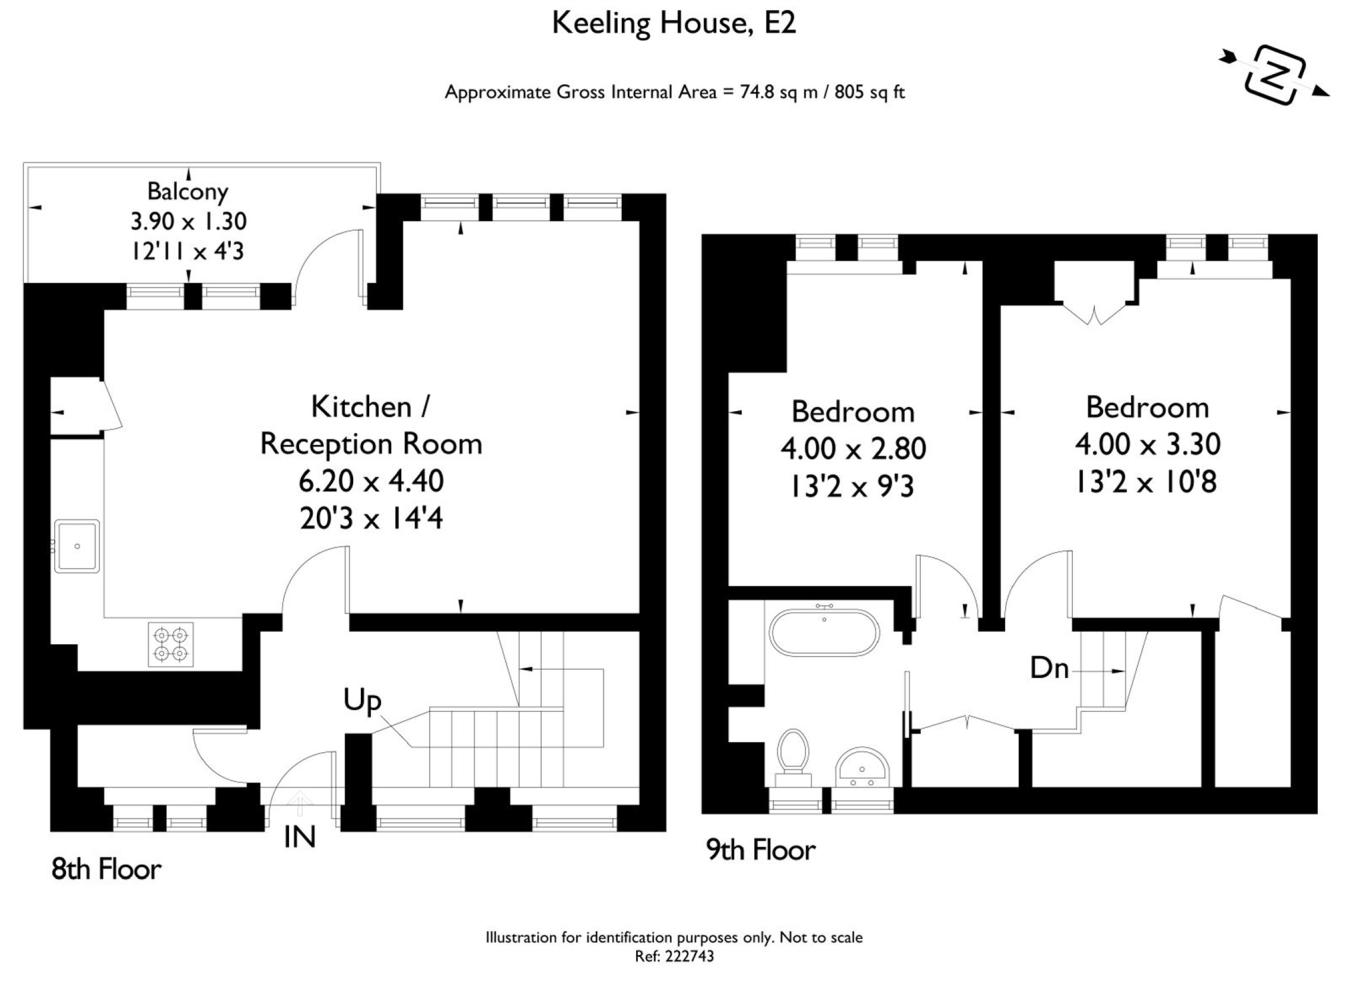 2 bedroom duplex for sale in keeling house claredale street london e2 e2